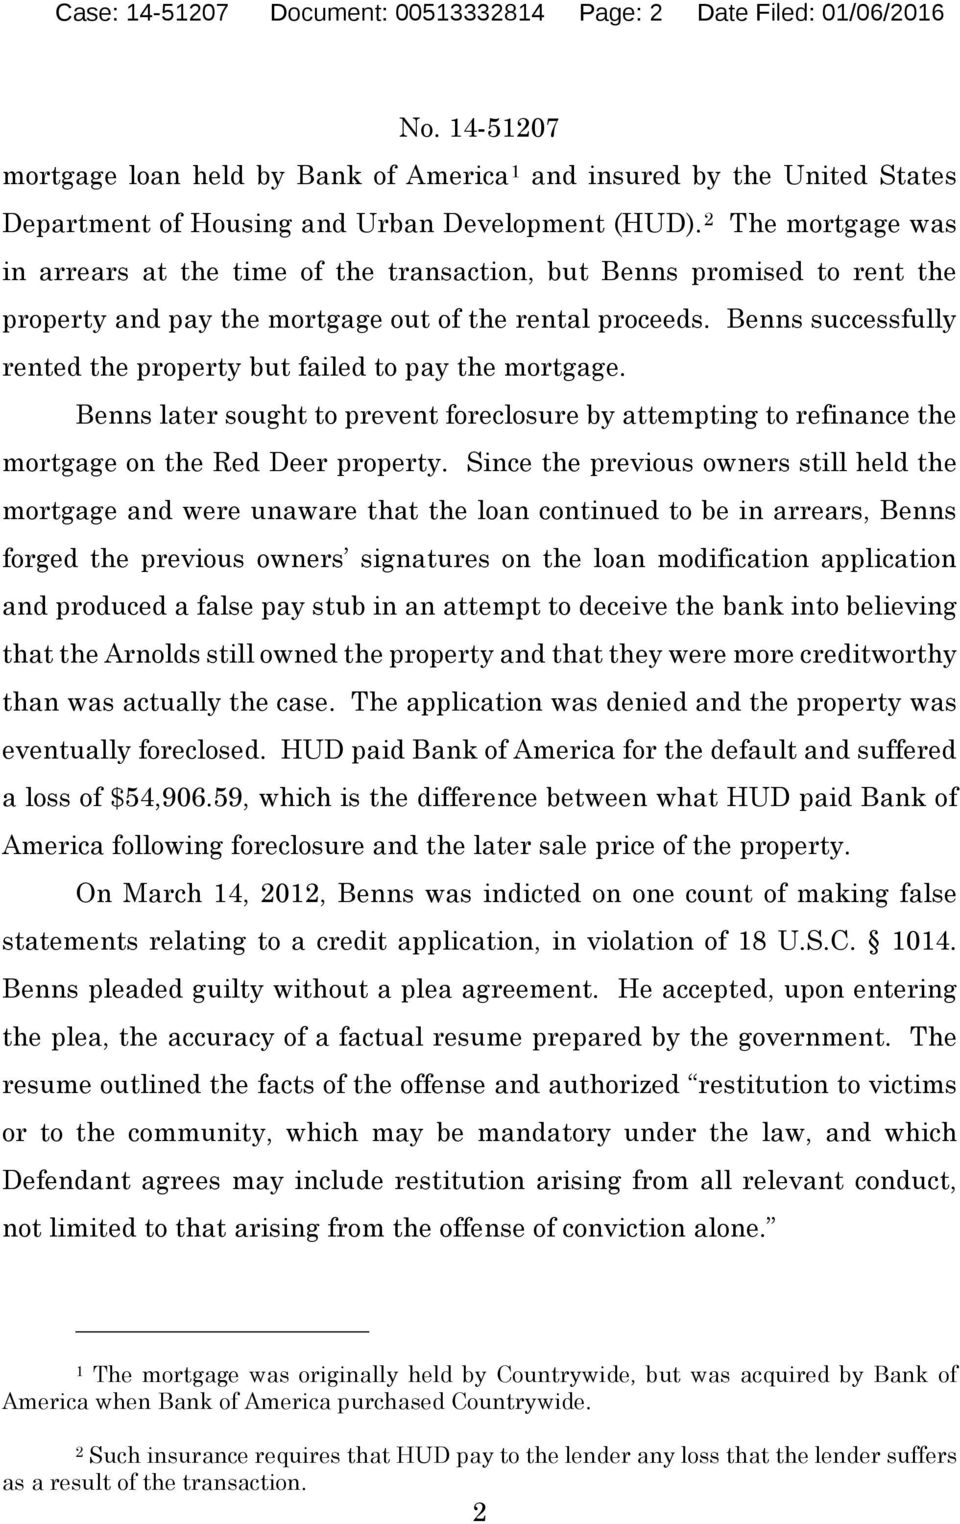 Benns successfully rented the property but failed to pay the mortgage. Benns later sought to prevent foreclosure by attempting to refinance the mortgage on the Red Deer property.